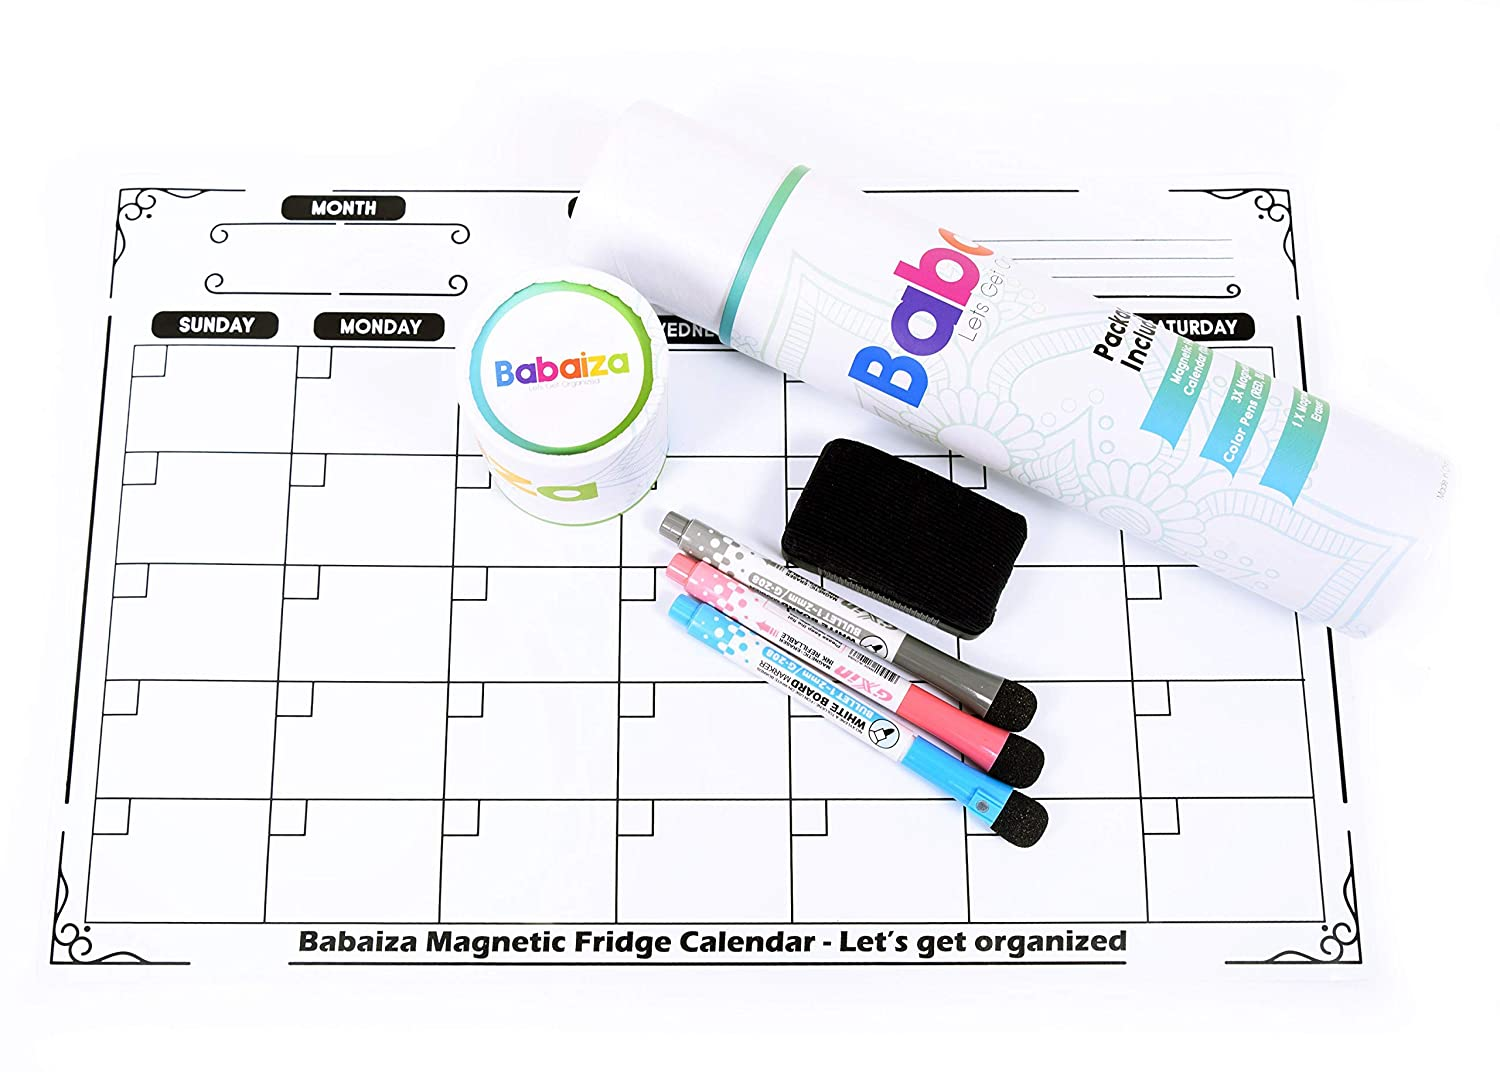 Babaiza Magnetic Calendar ONLY...